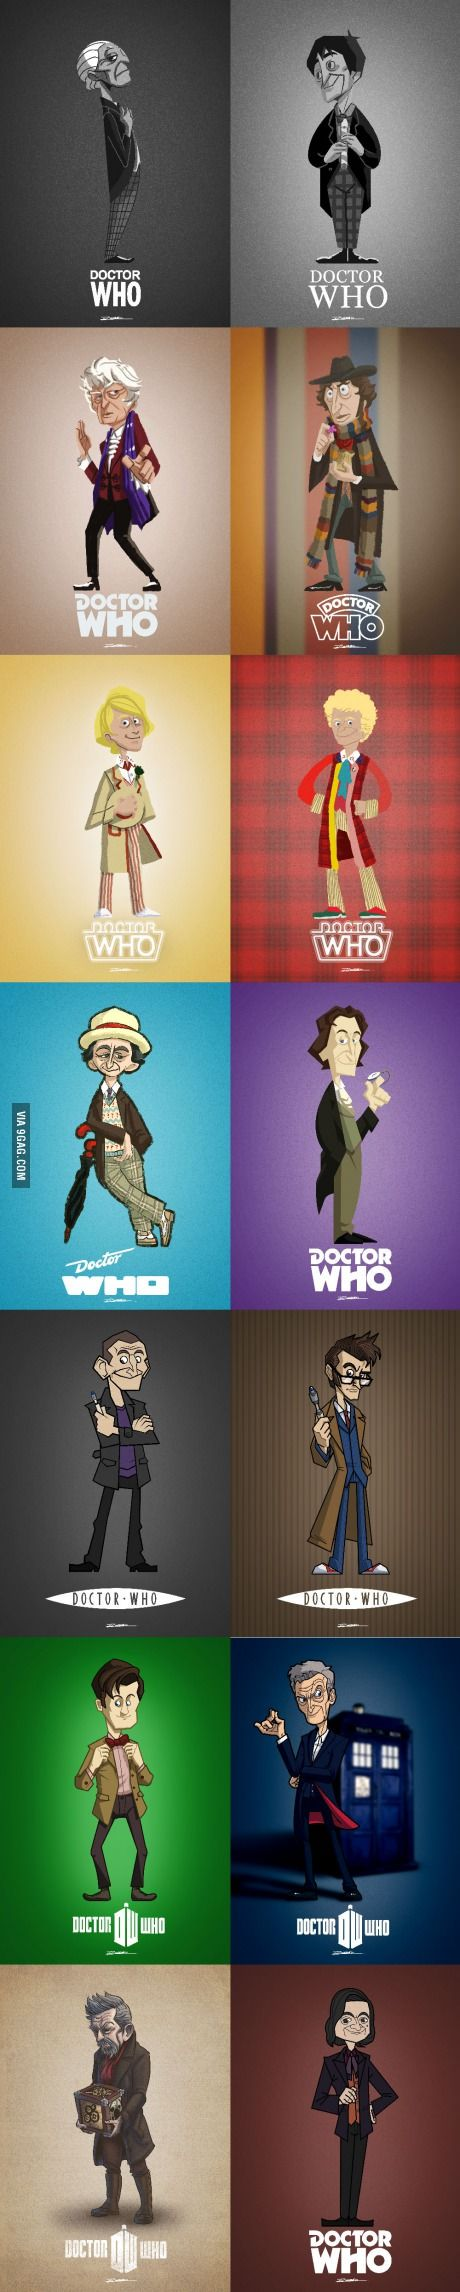 Doctor Who in Cartoon Style.